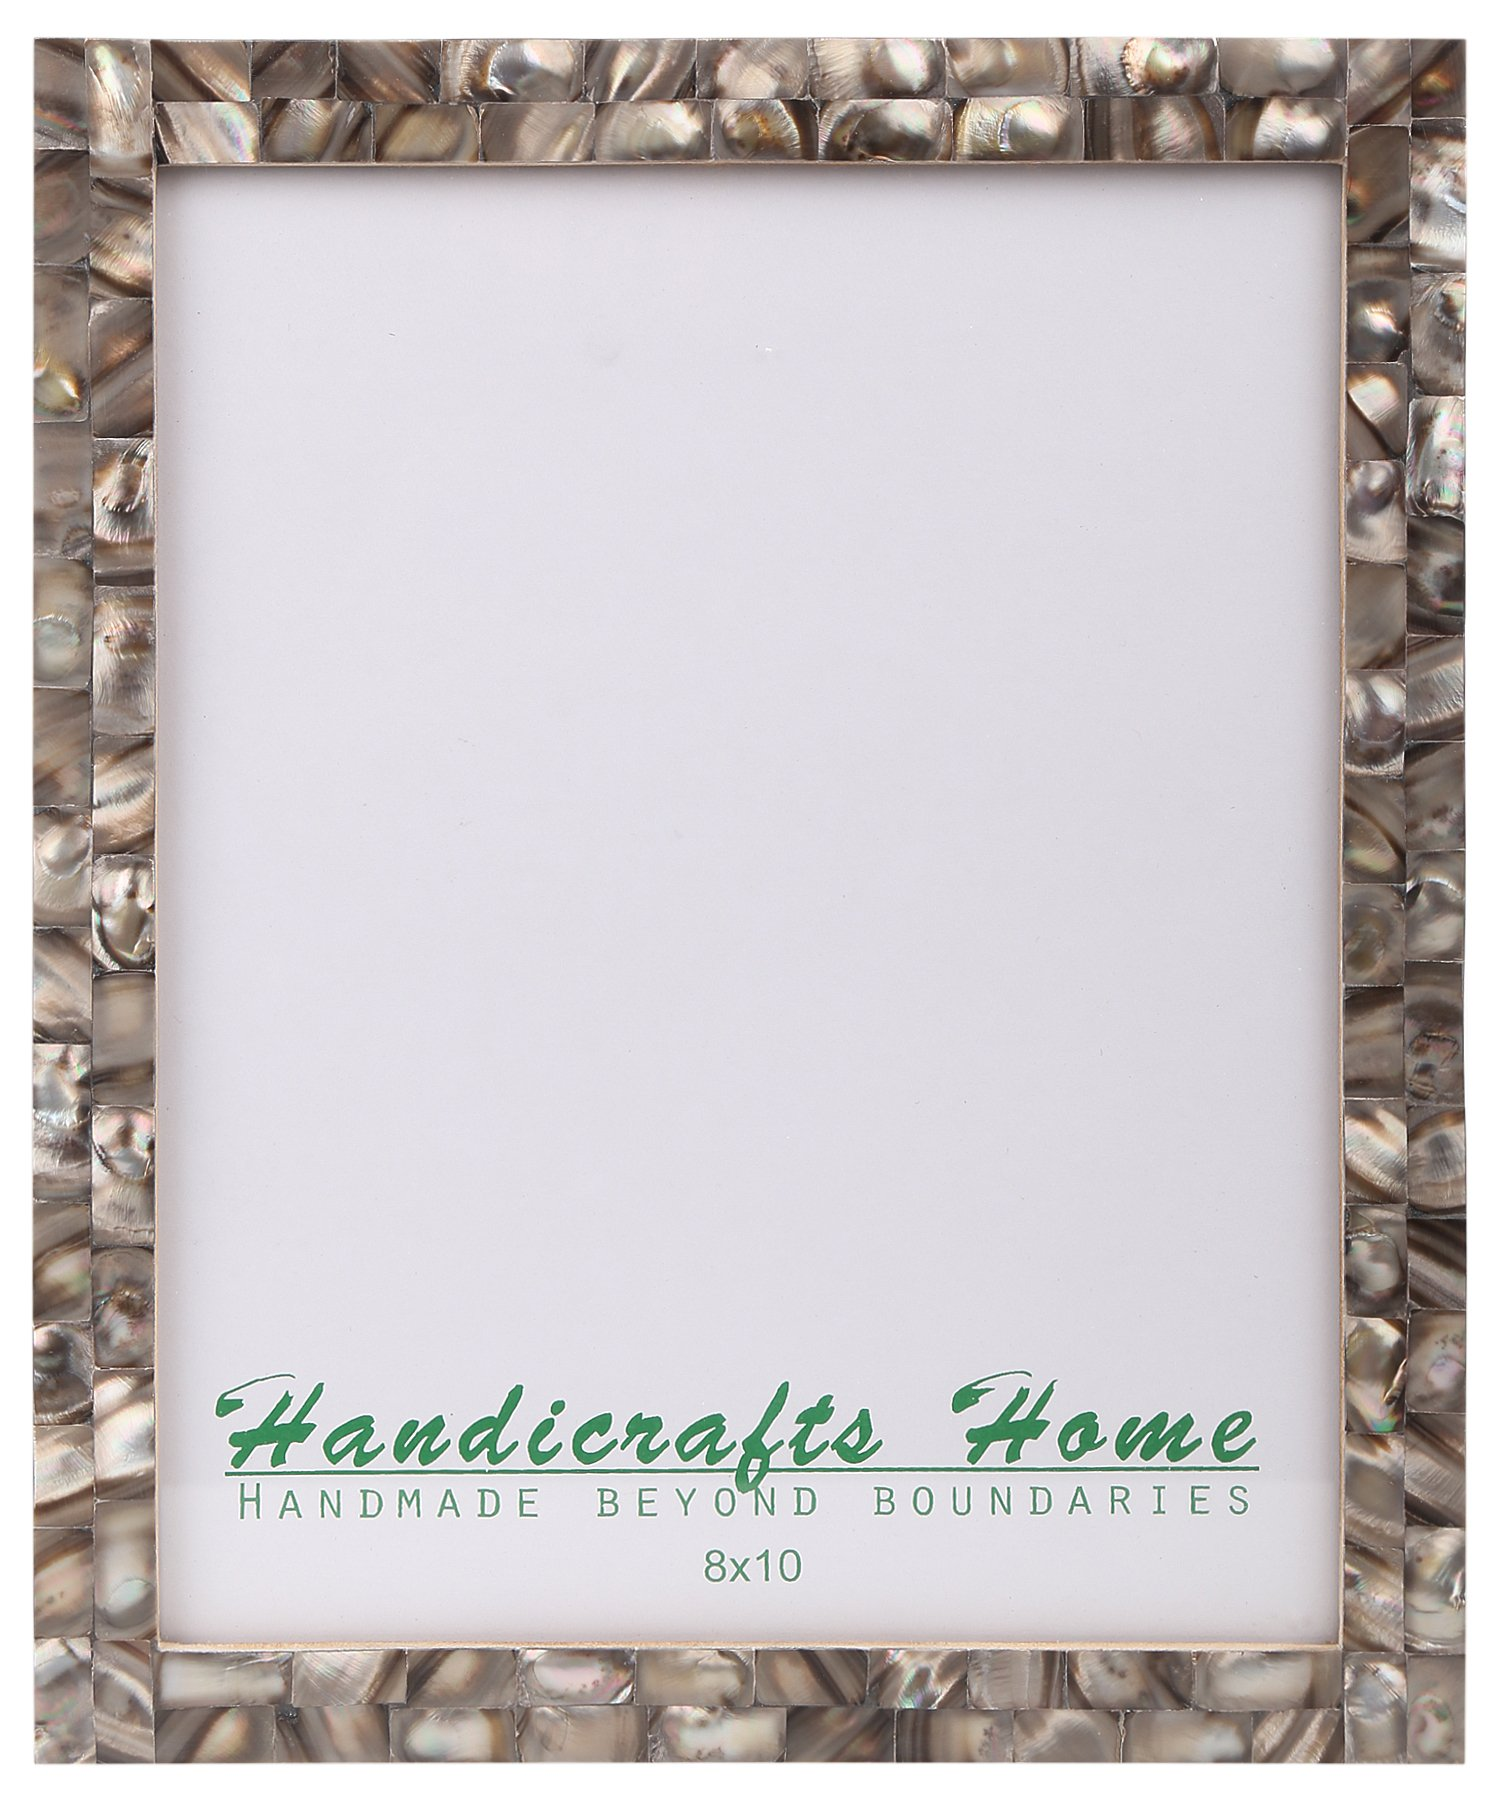 8x10 Picture Frames Chic Photo Frame Mother of Pearl Handmade Vintage from Handicrafts Home (8x10, Grey)